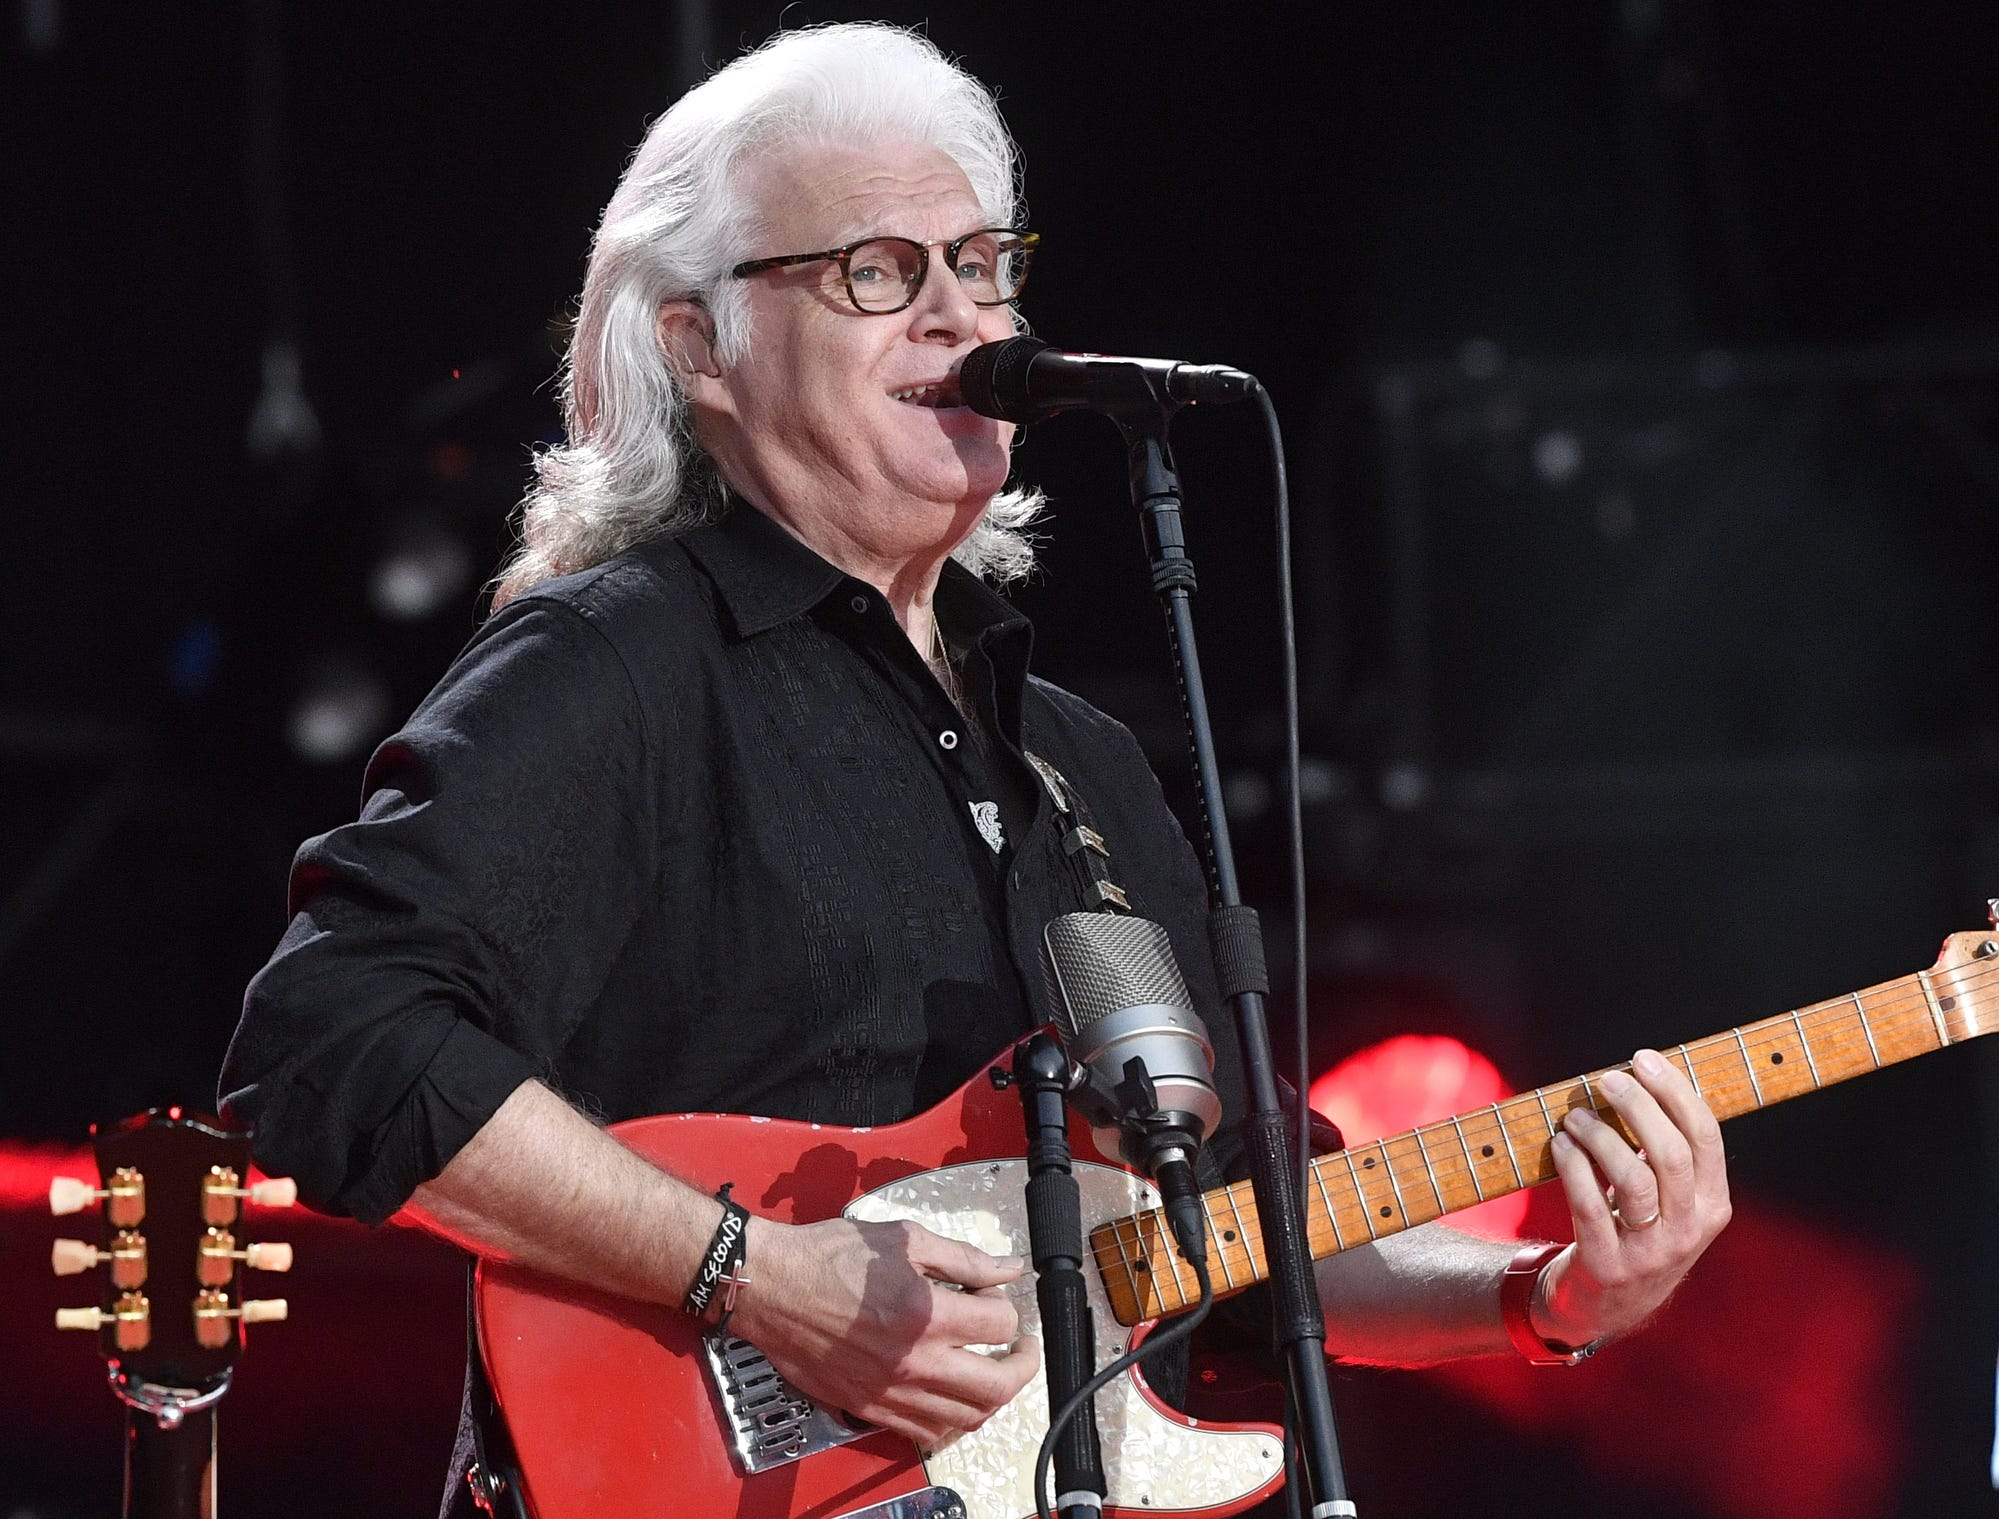 NOV. 2 OPRY AT THE RYMAN WITH RICKY SKAGGS, MORE: 7 and 9:30 p.m. Ryman Auditorium, $40-$99, ryman.com